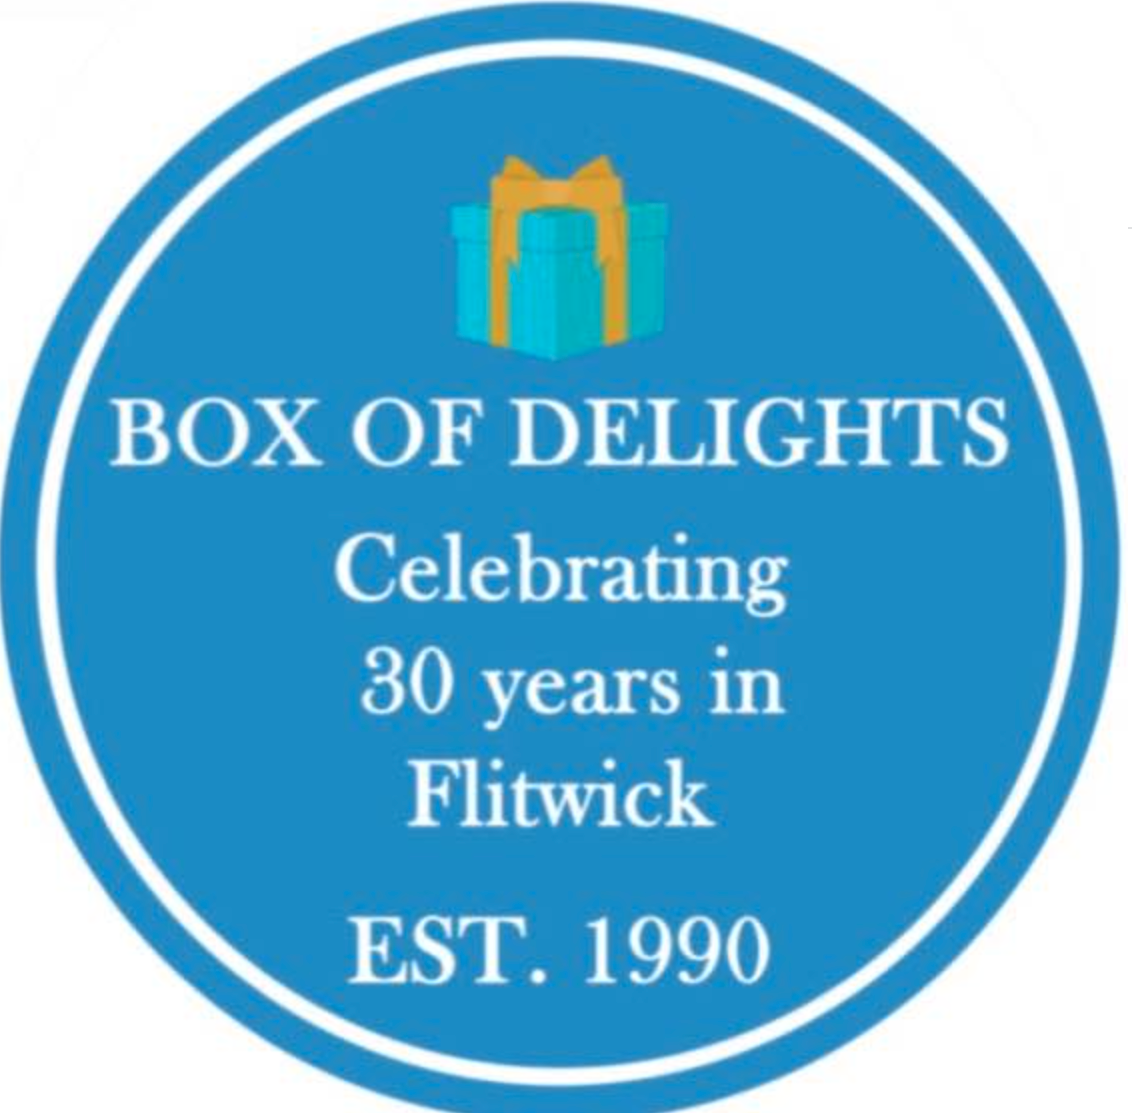 Above: Box of Delights is so much part of Flitwick life that it is worthy of a 'blue plaque'.